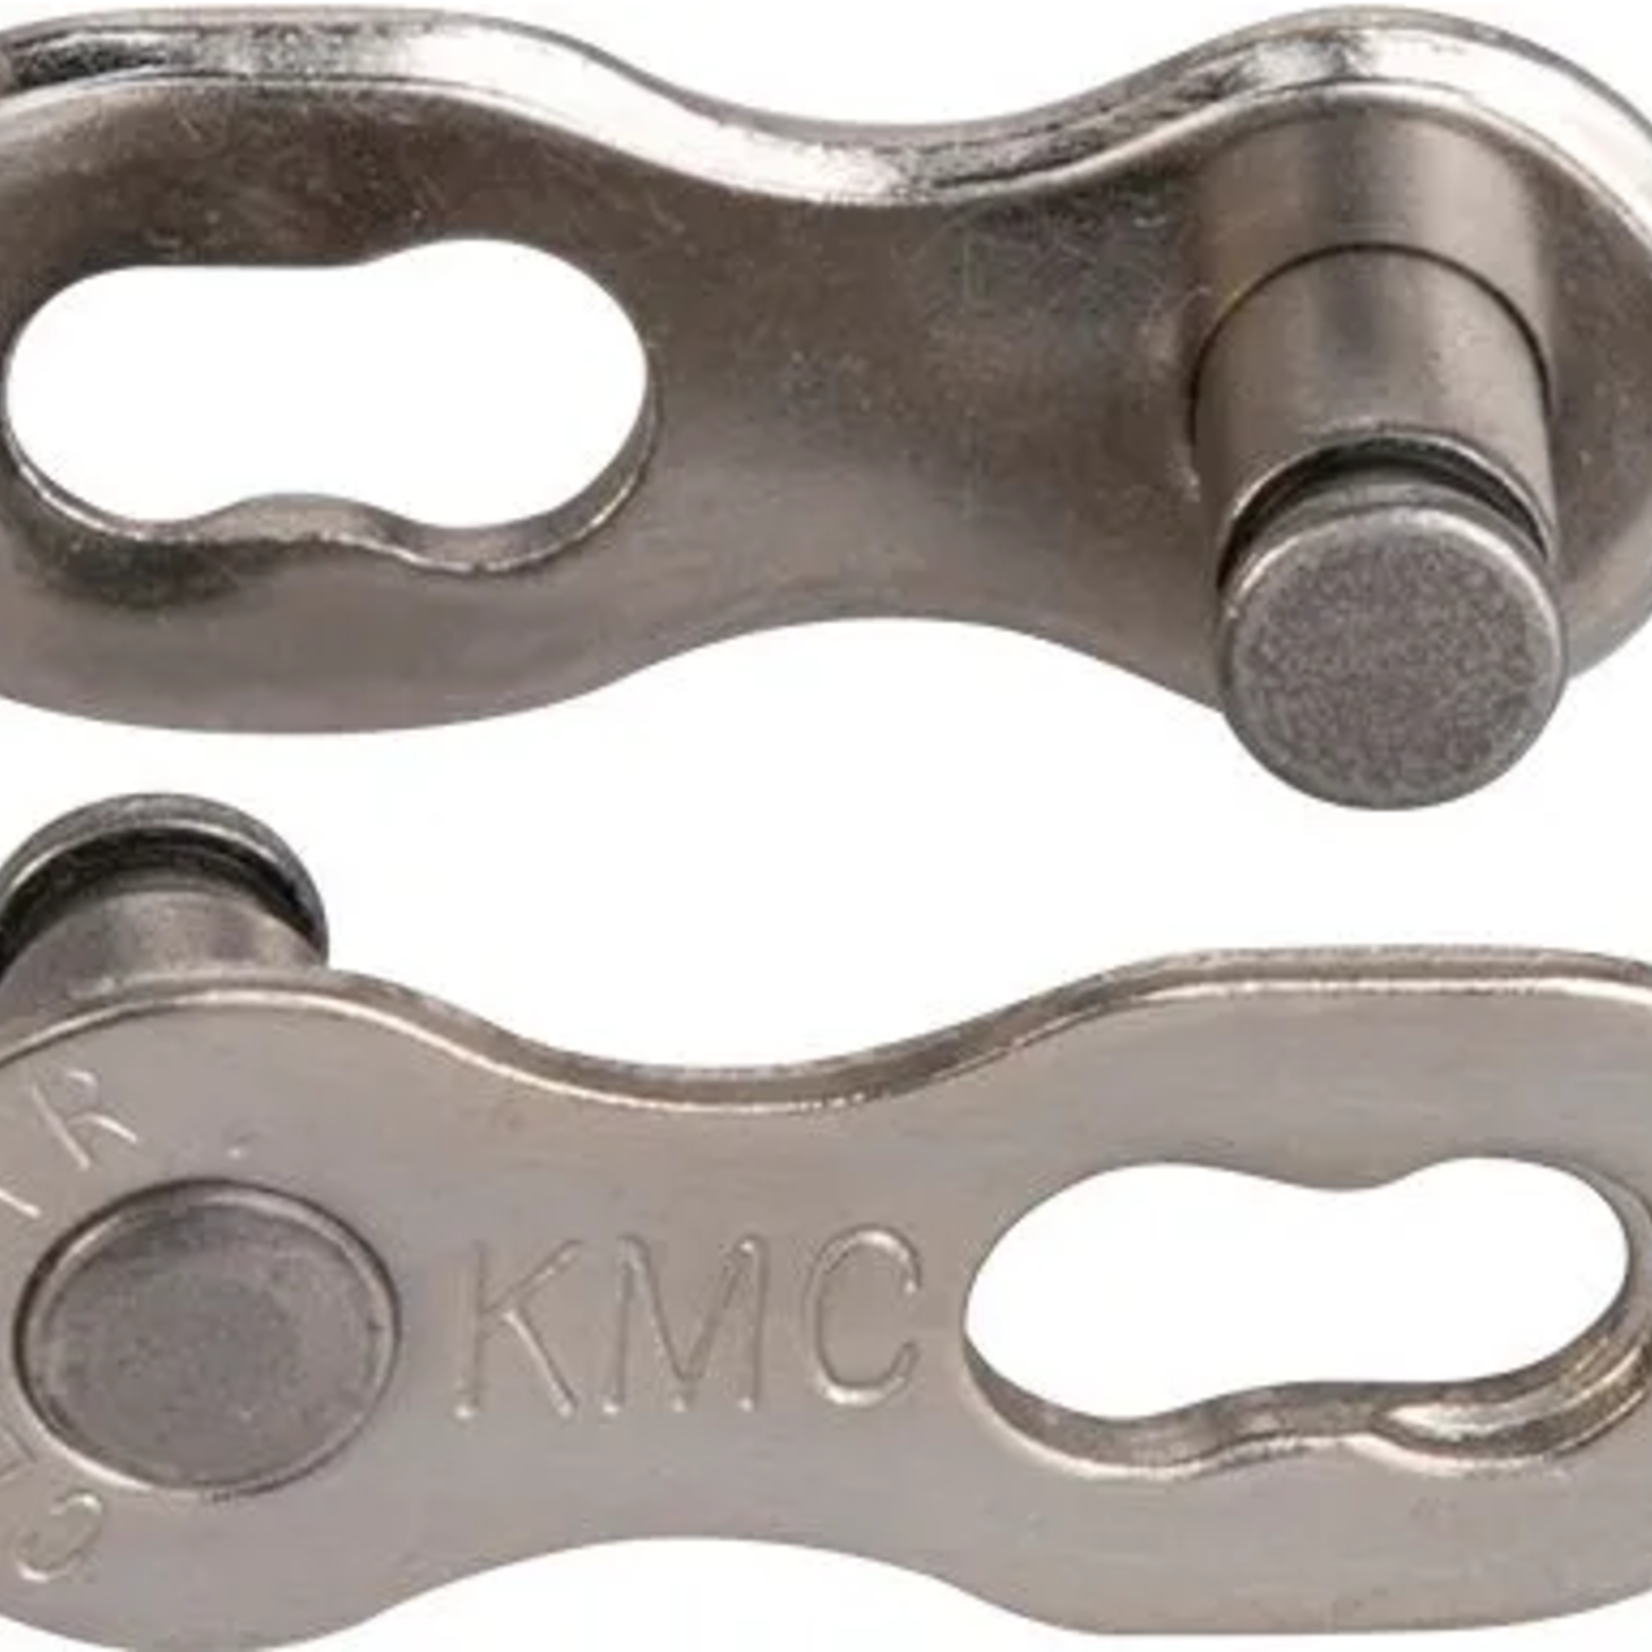 KMC KMC 6-7-8 speed EPT Silver Missing Link Reusable 7.3mm (x2)